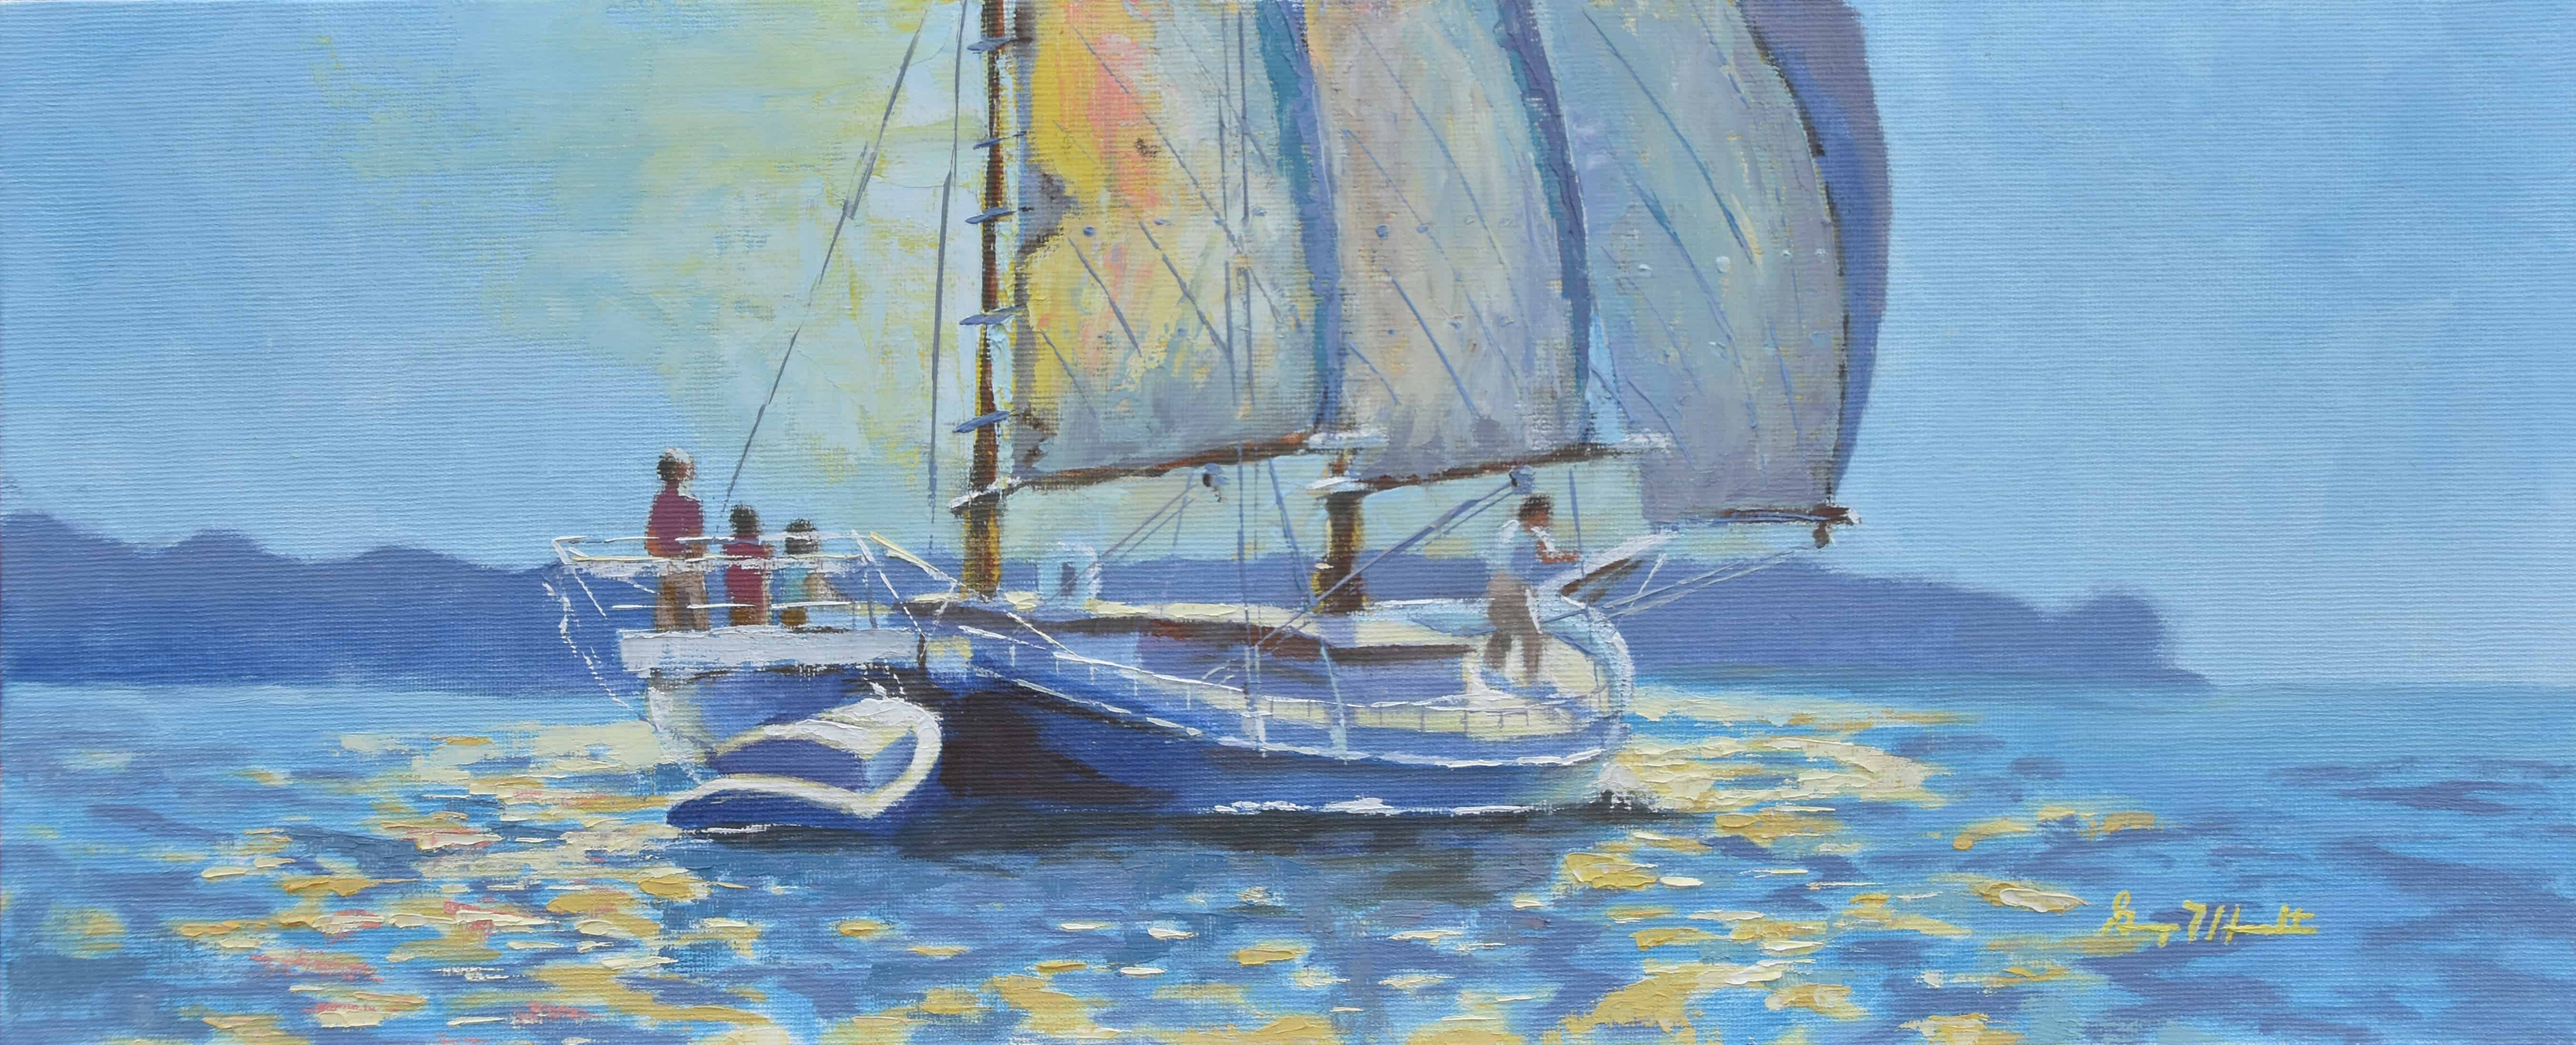 OysterFest Archives - Chesapeake Bay Maritime Museum